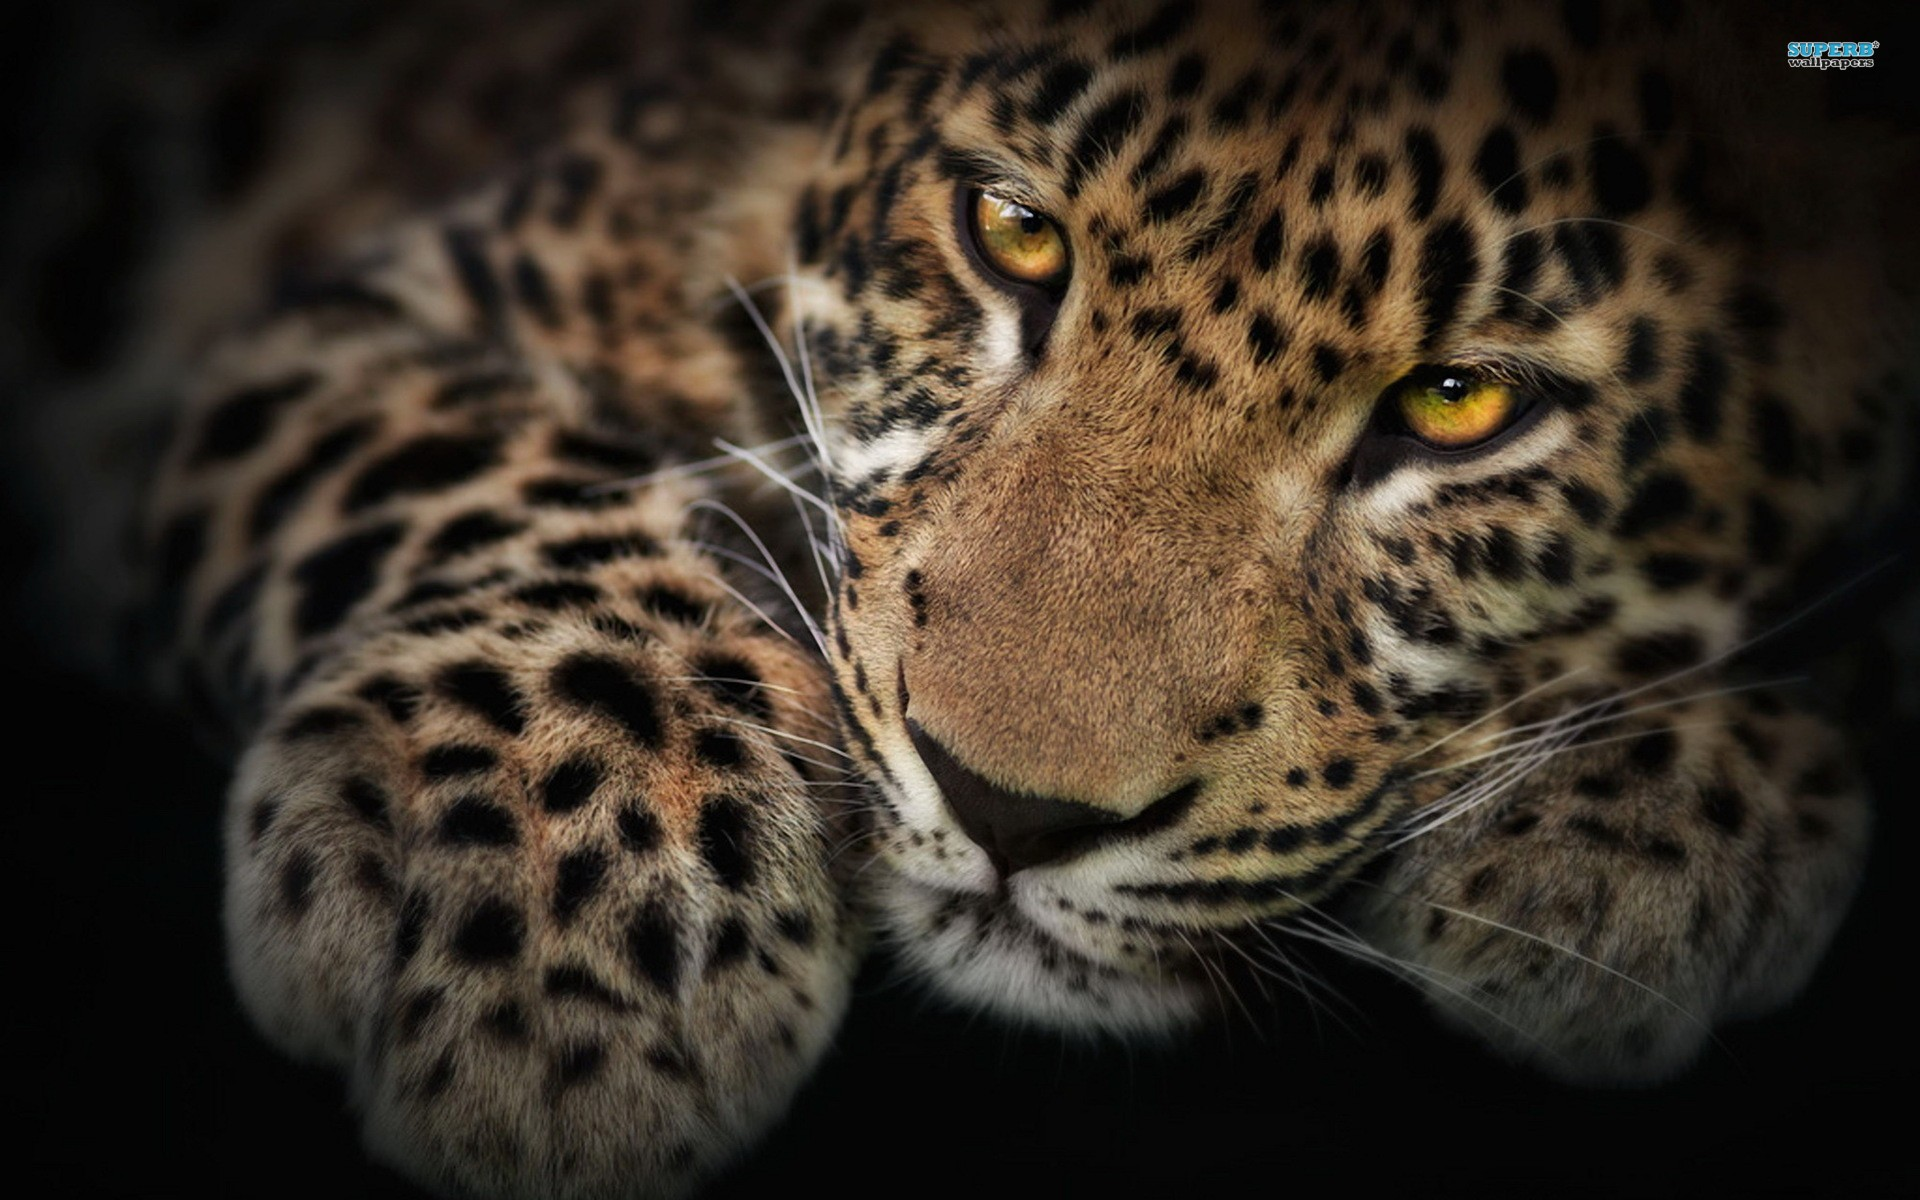 leopard wallpaper full hd